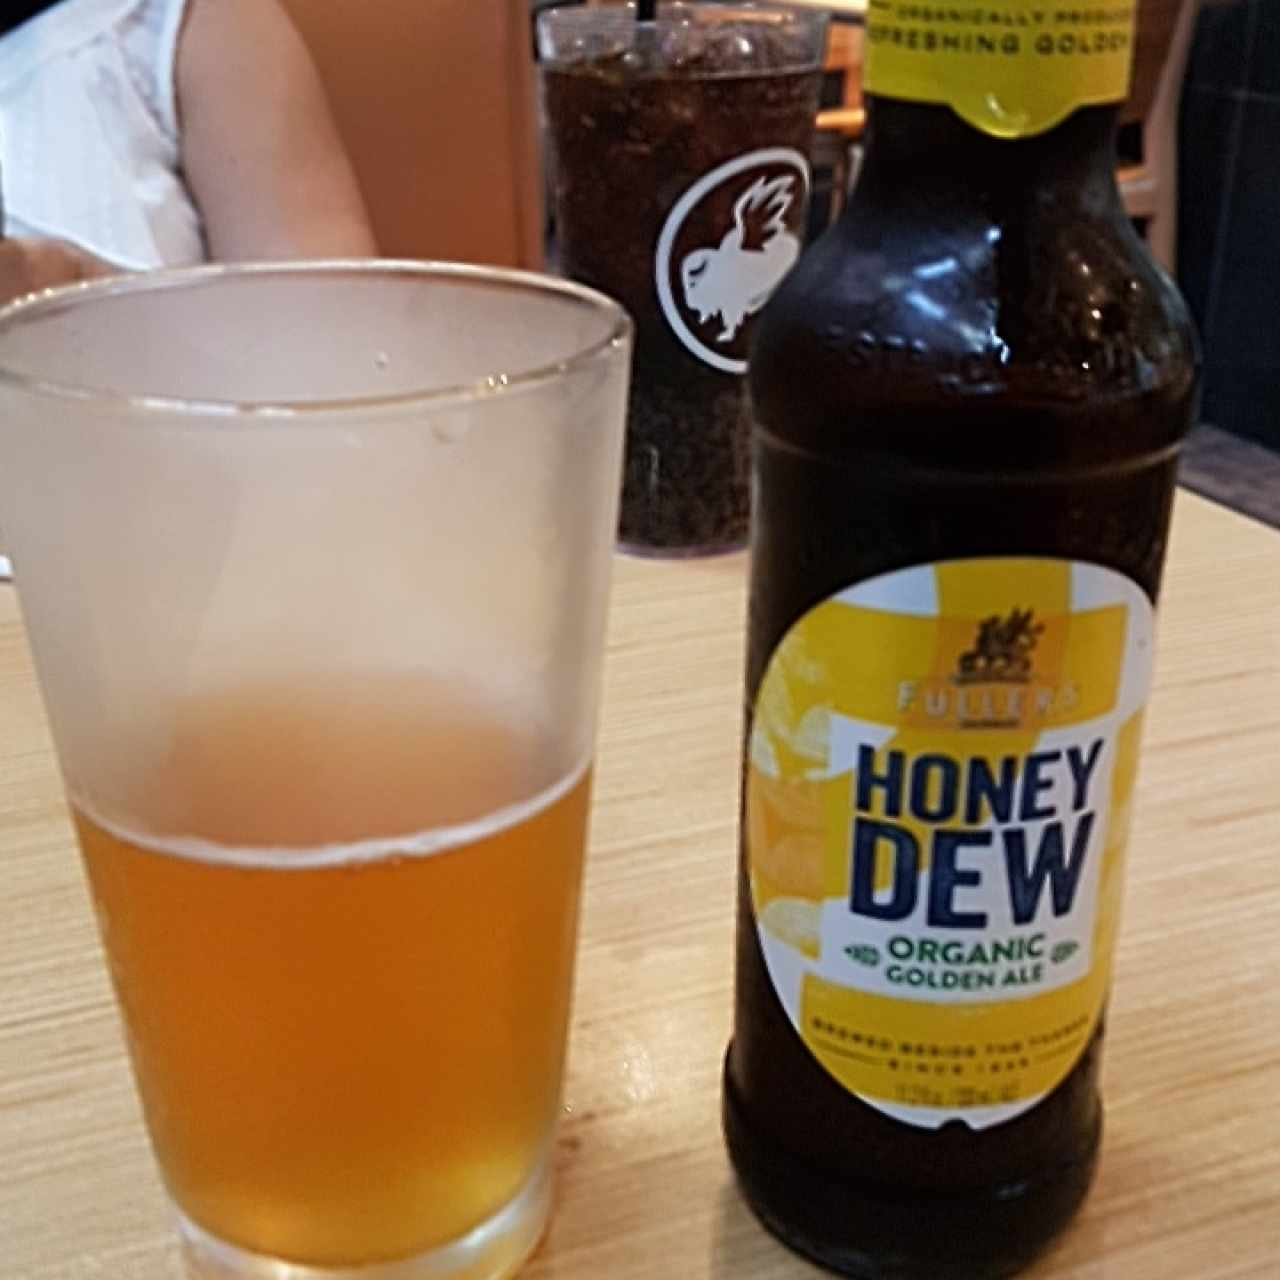 Honey Dew Organic Golden Ale